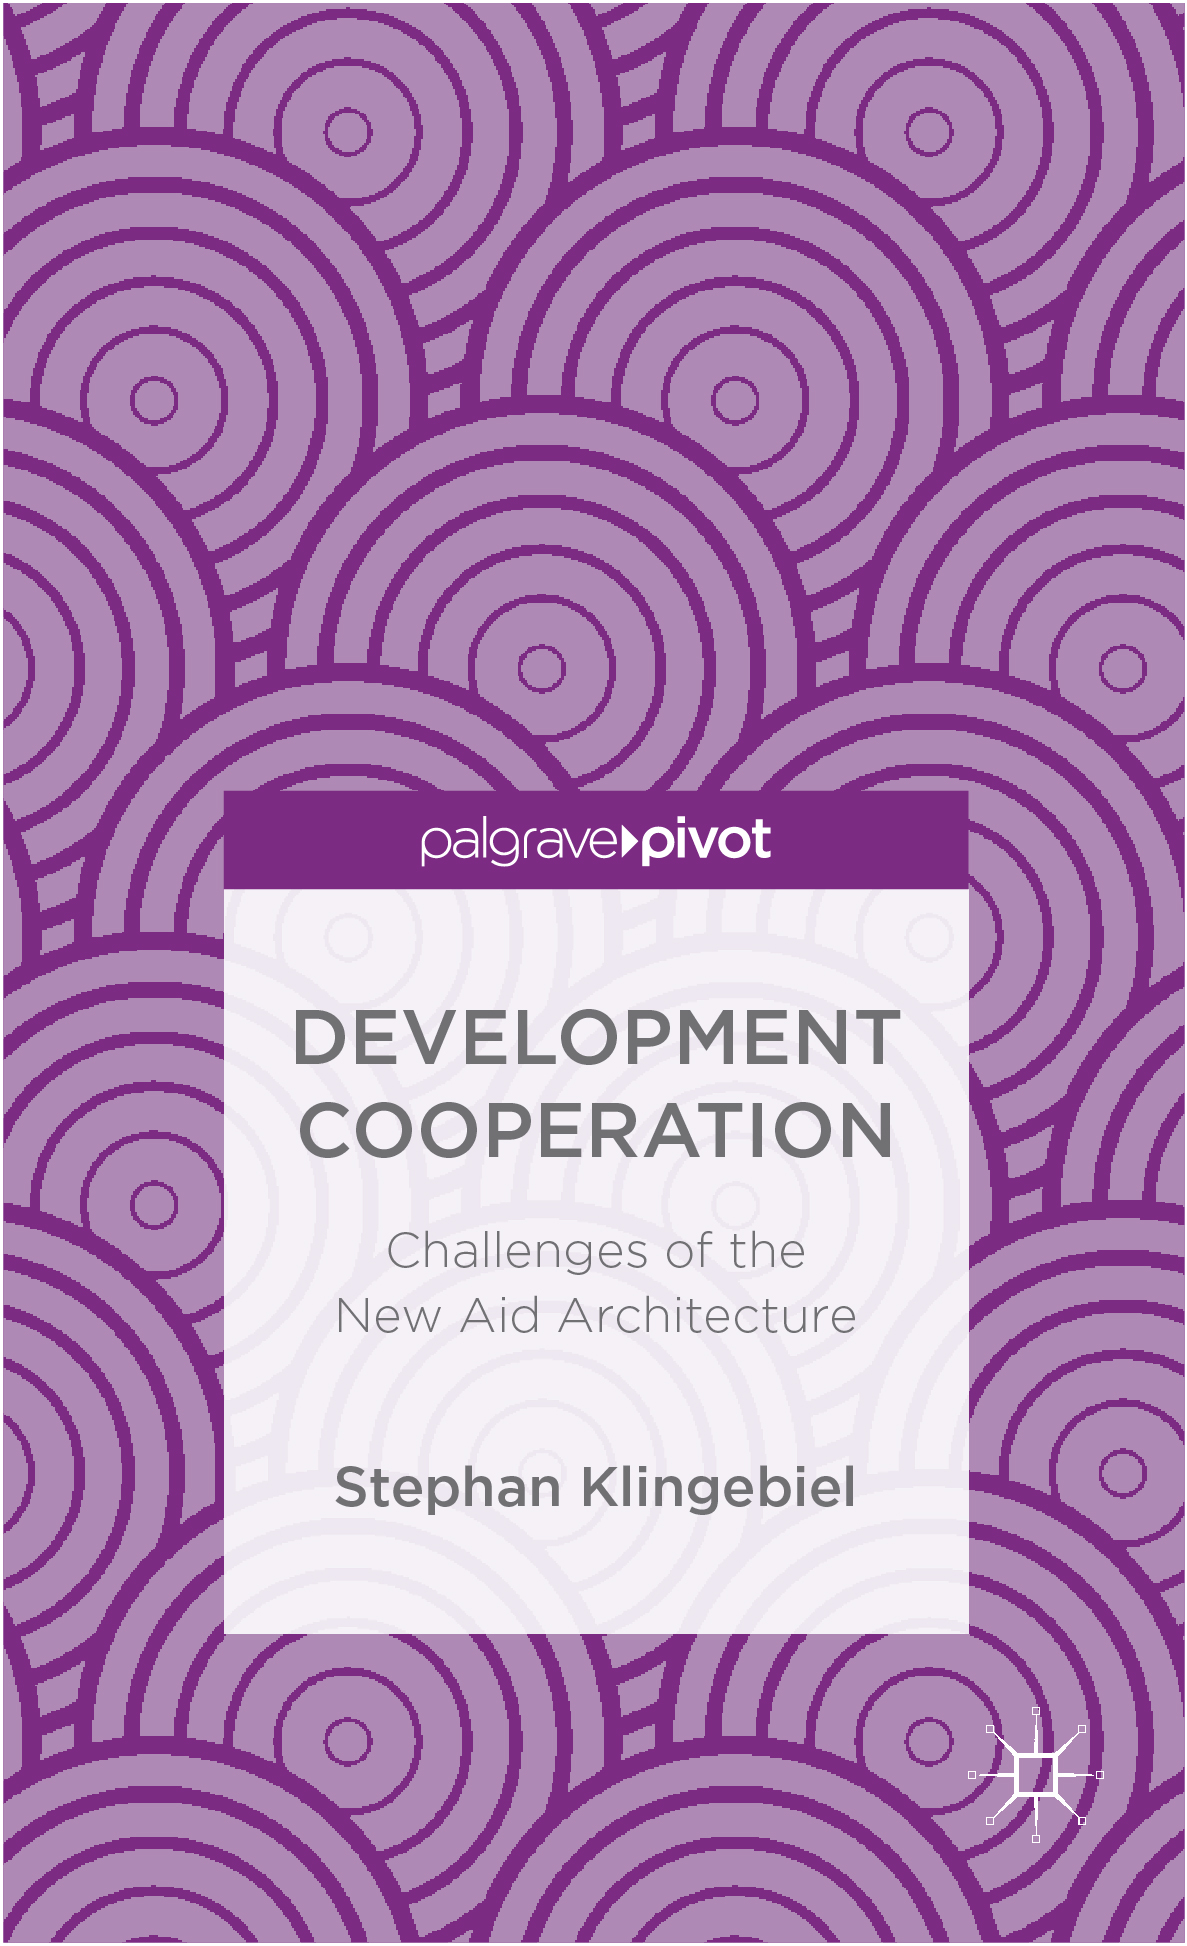 Download Ebook Development Cooperation by Stephan Klingebiel Pdf